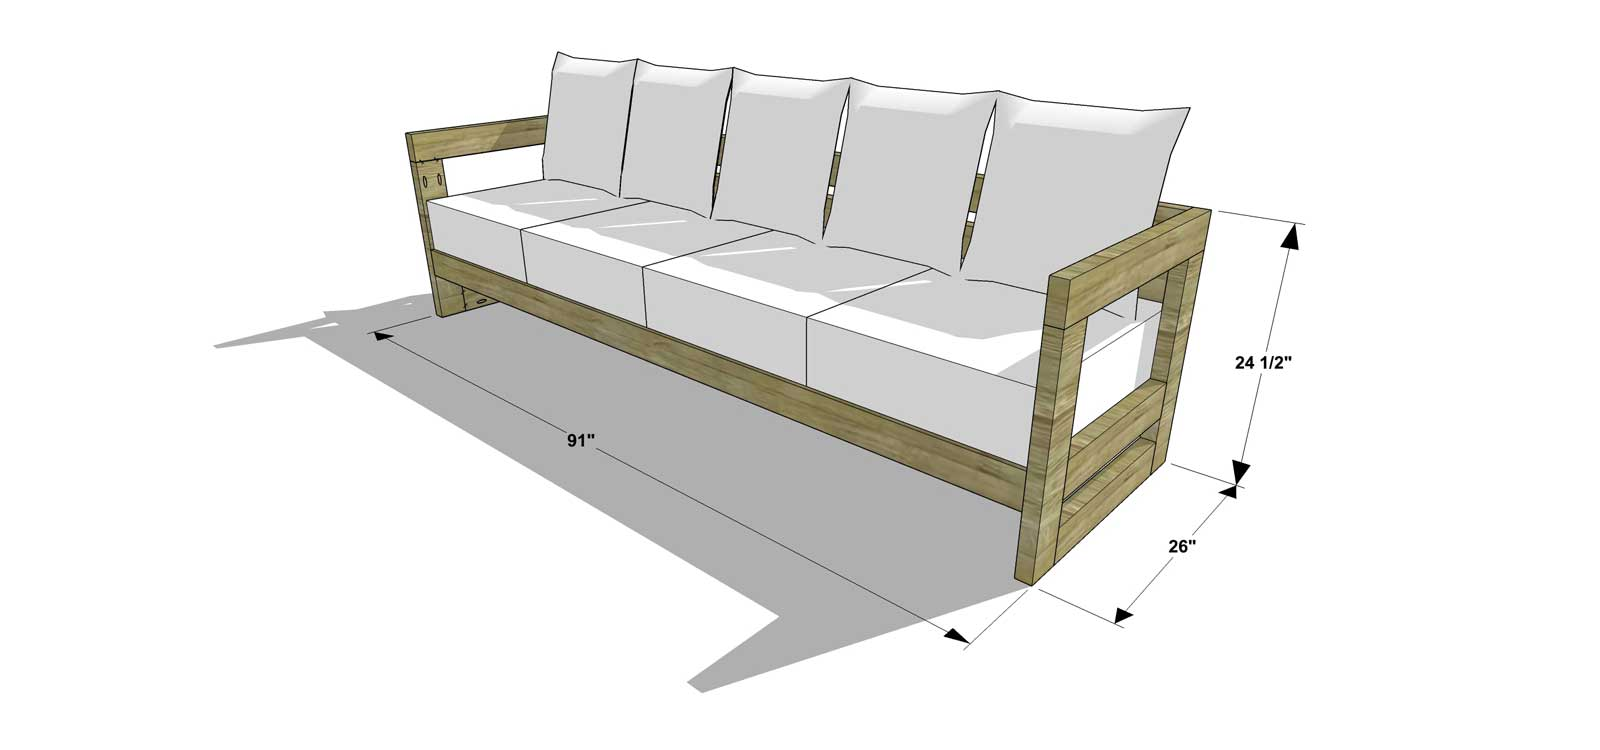 The Design Confidential DIY Furniture Plans How To Build An Aegean Outdoor  Sofa